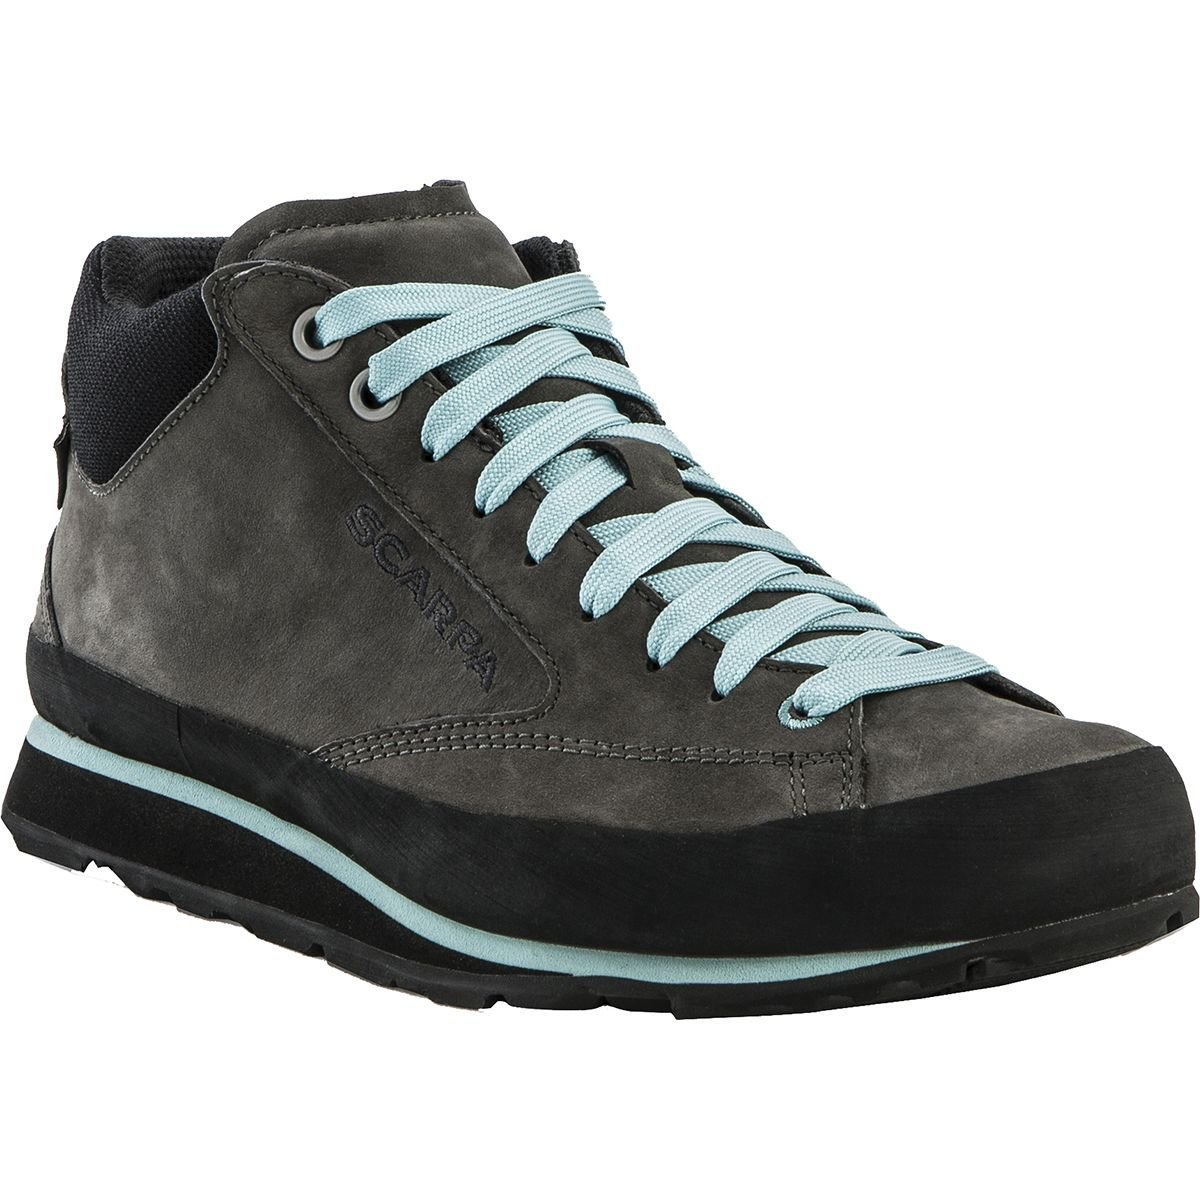 Scarpa Conifer GTX Shoe - Women's Graphite/Mineral Blue, 37.5